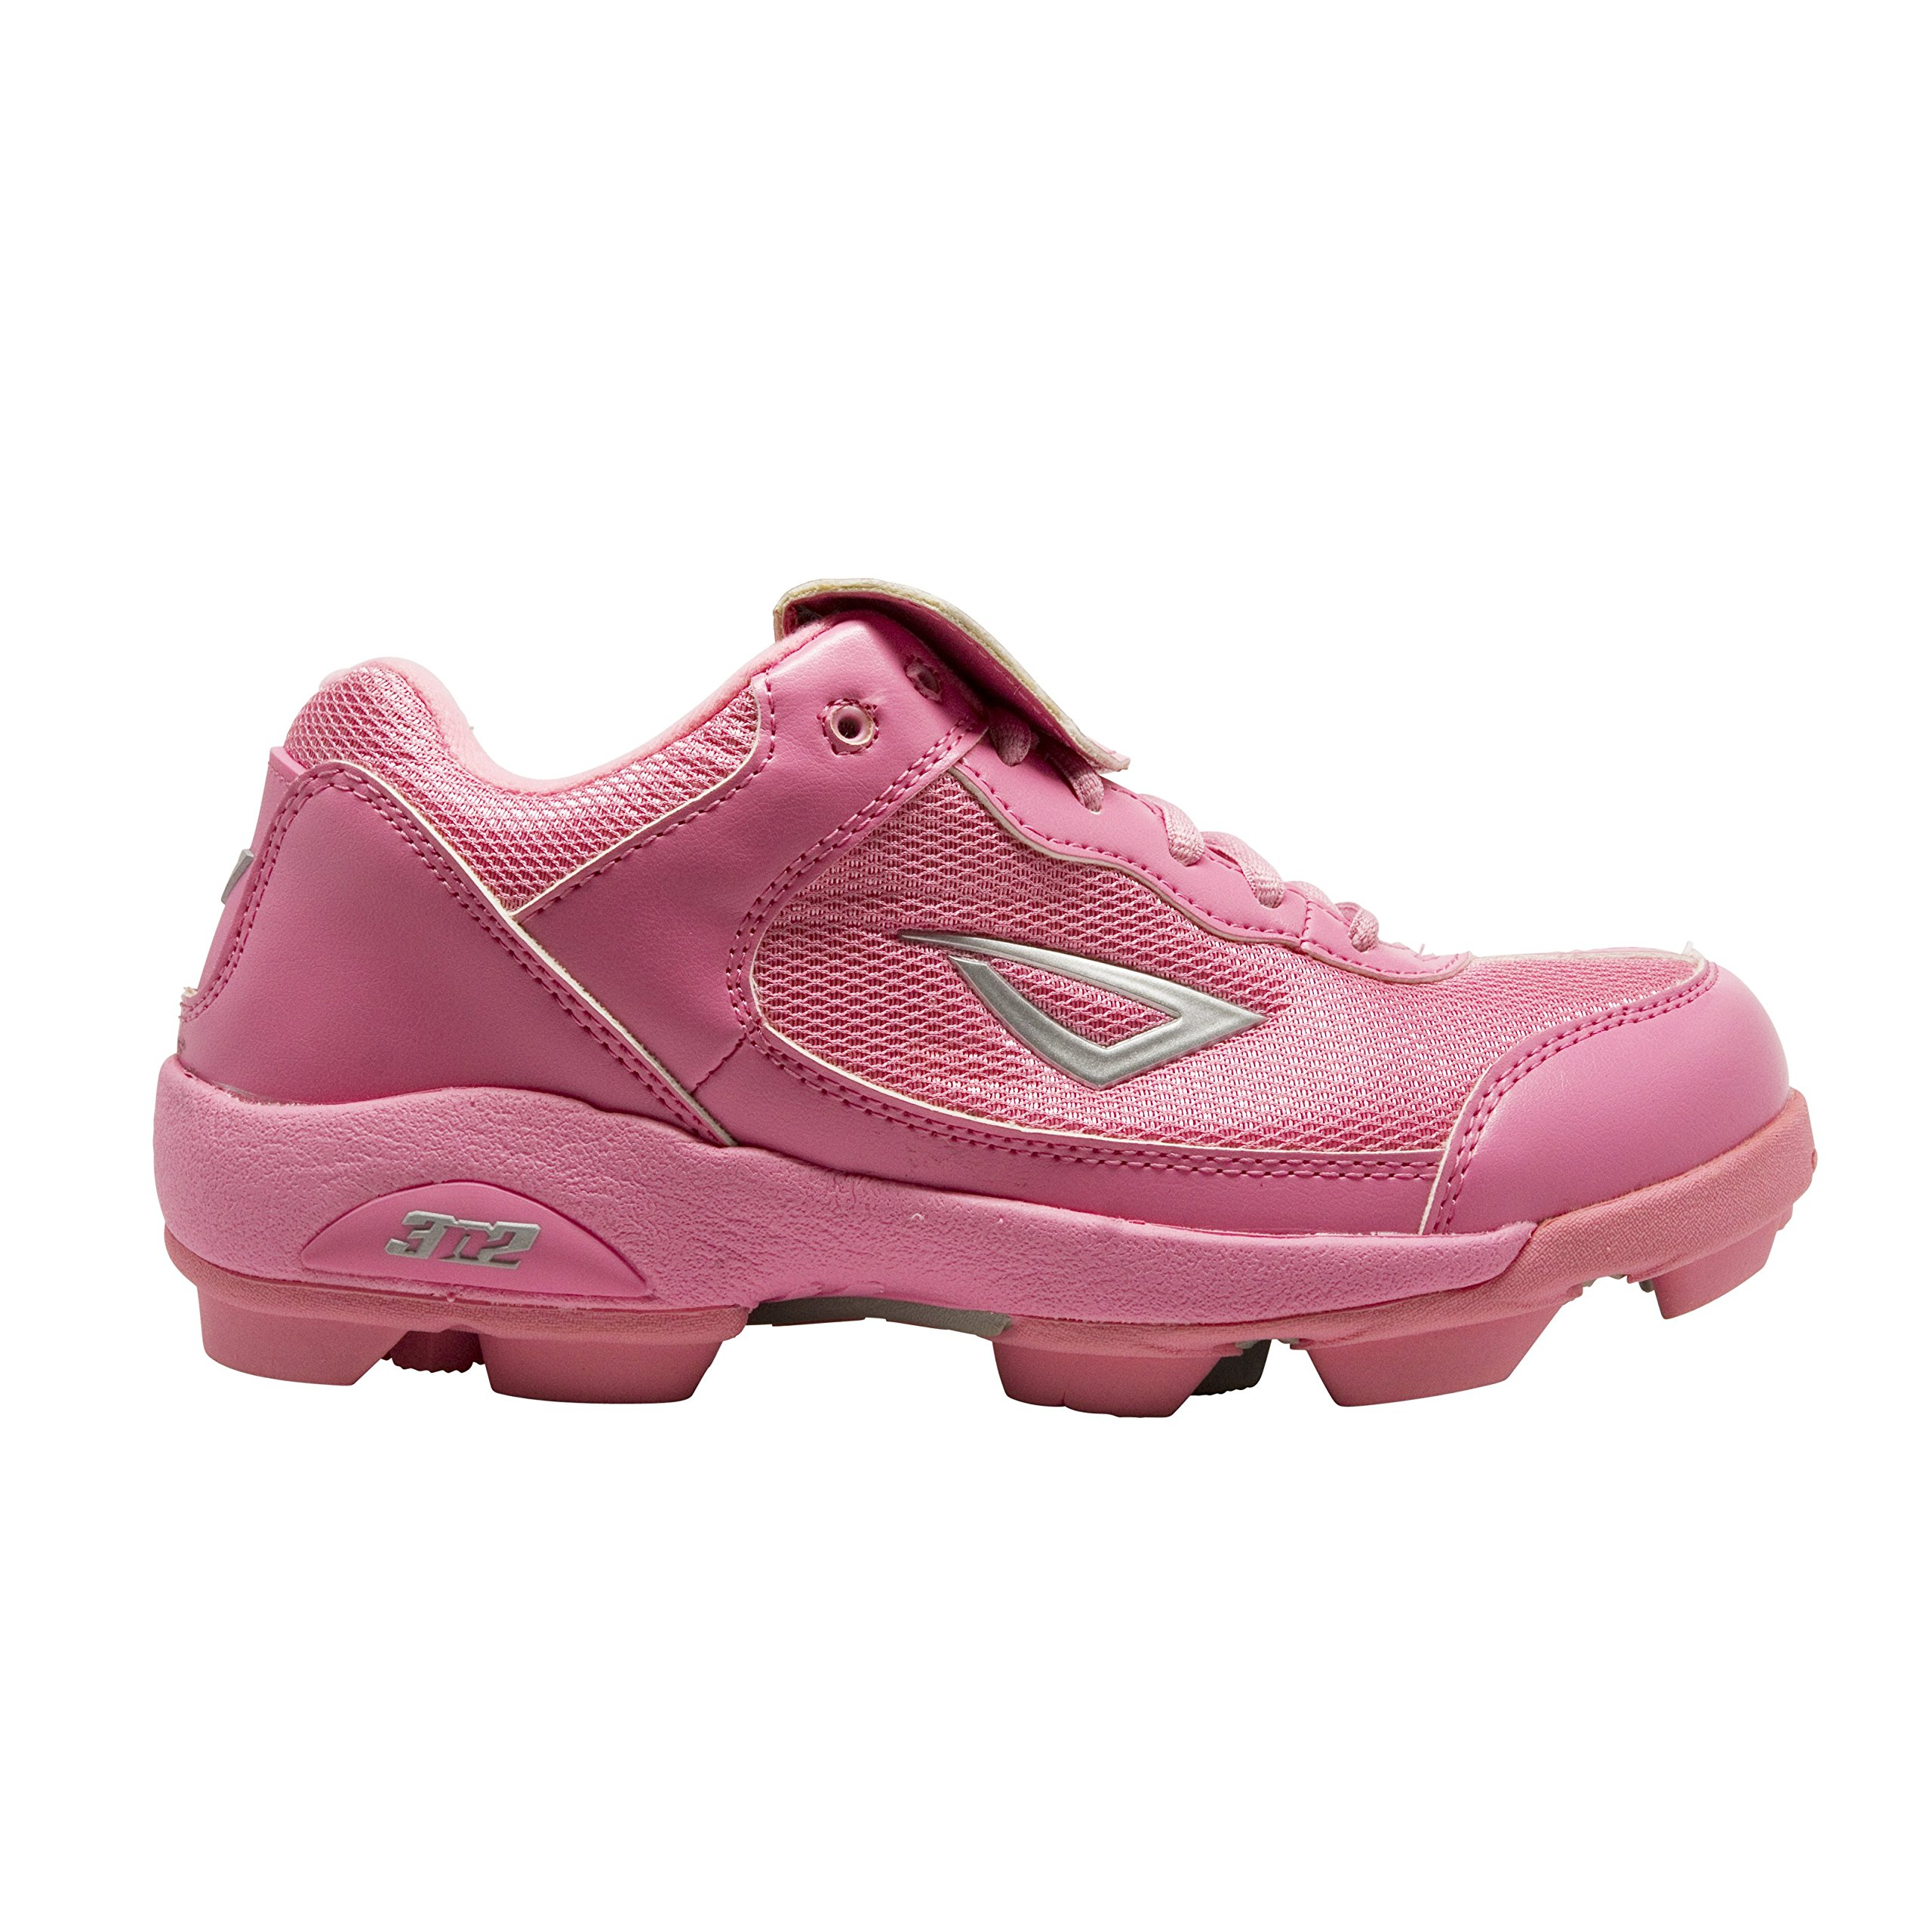 3N2 Youth Rookie Shoes, Pink, Size 5.5 by 3N2